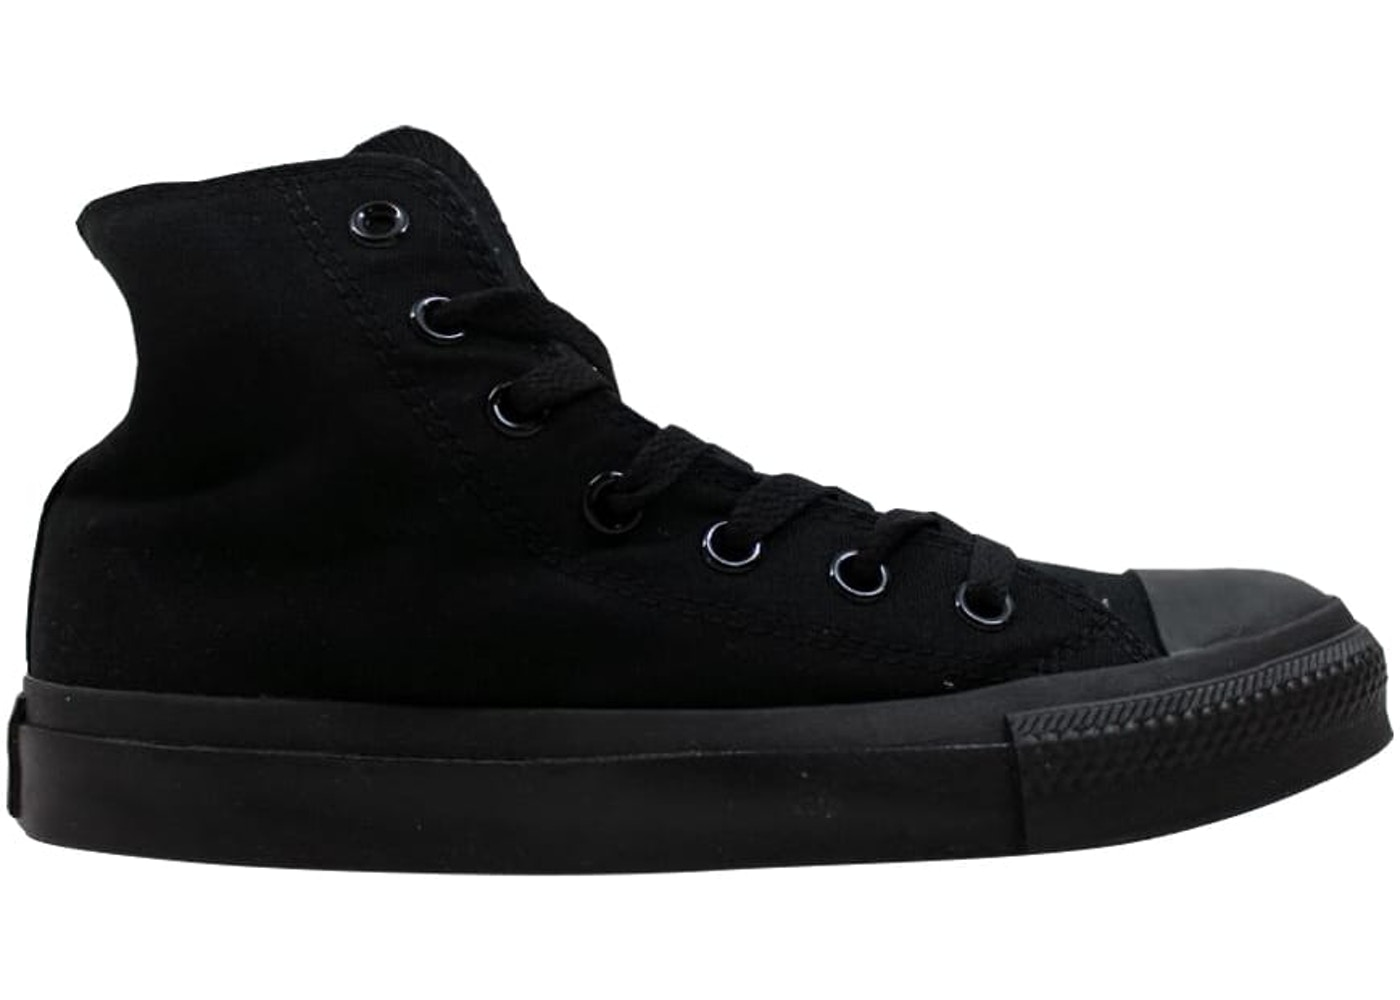 new style 885c9 44c77 Converse Chuck Taylor All Star Hi Black Monochrome